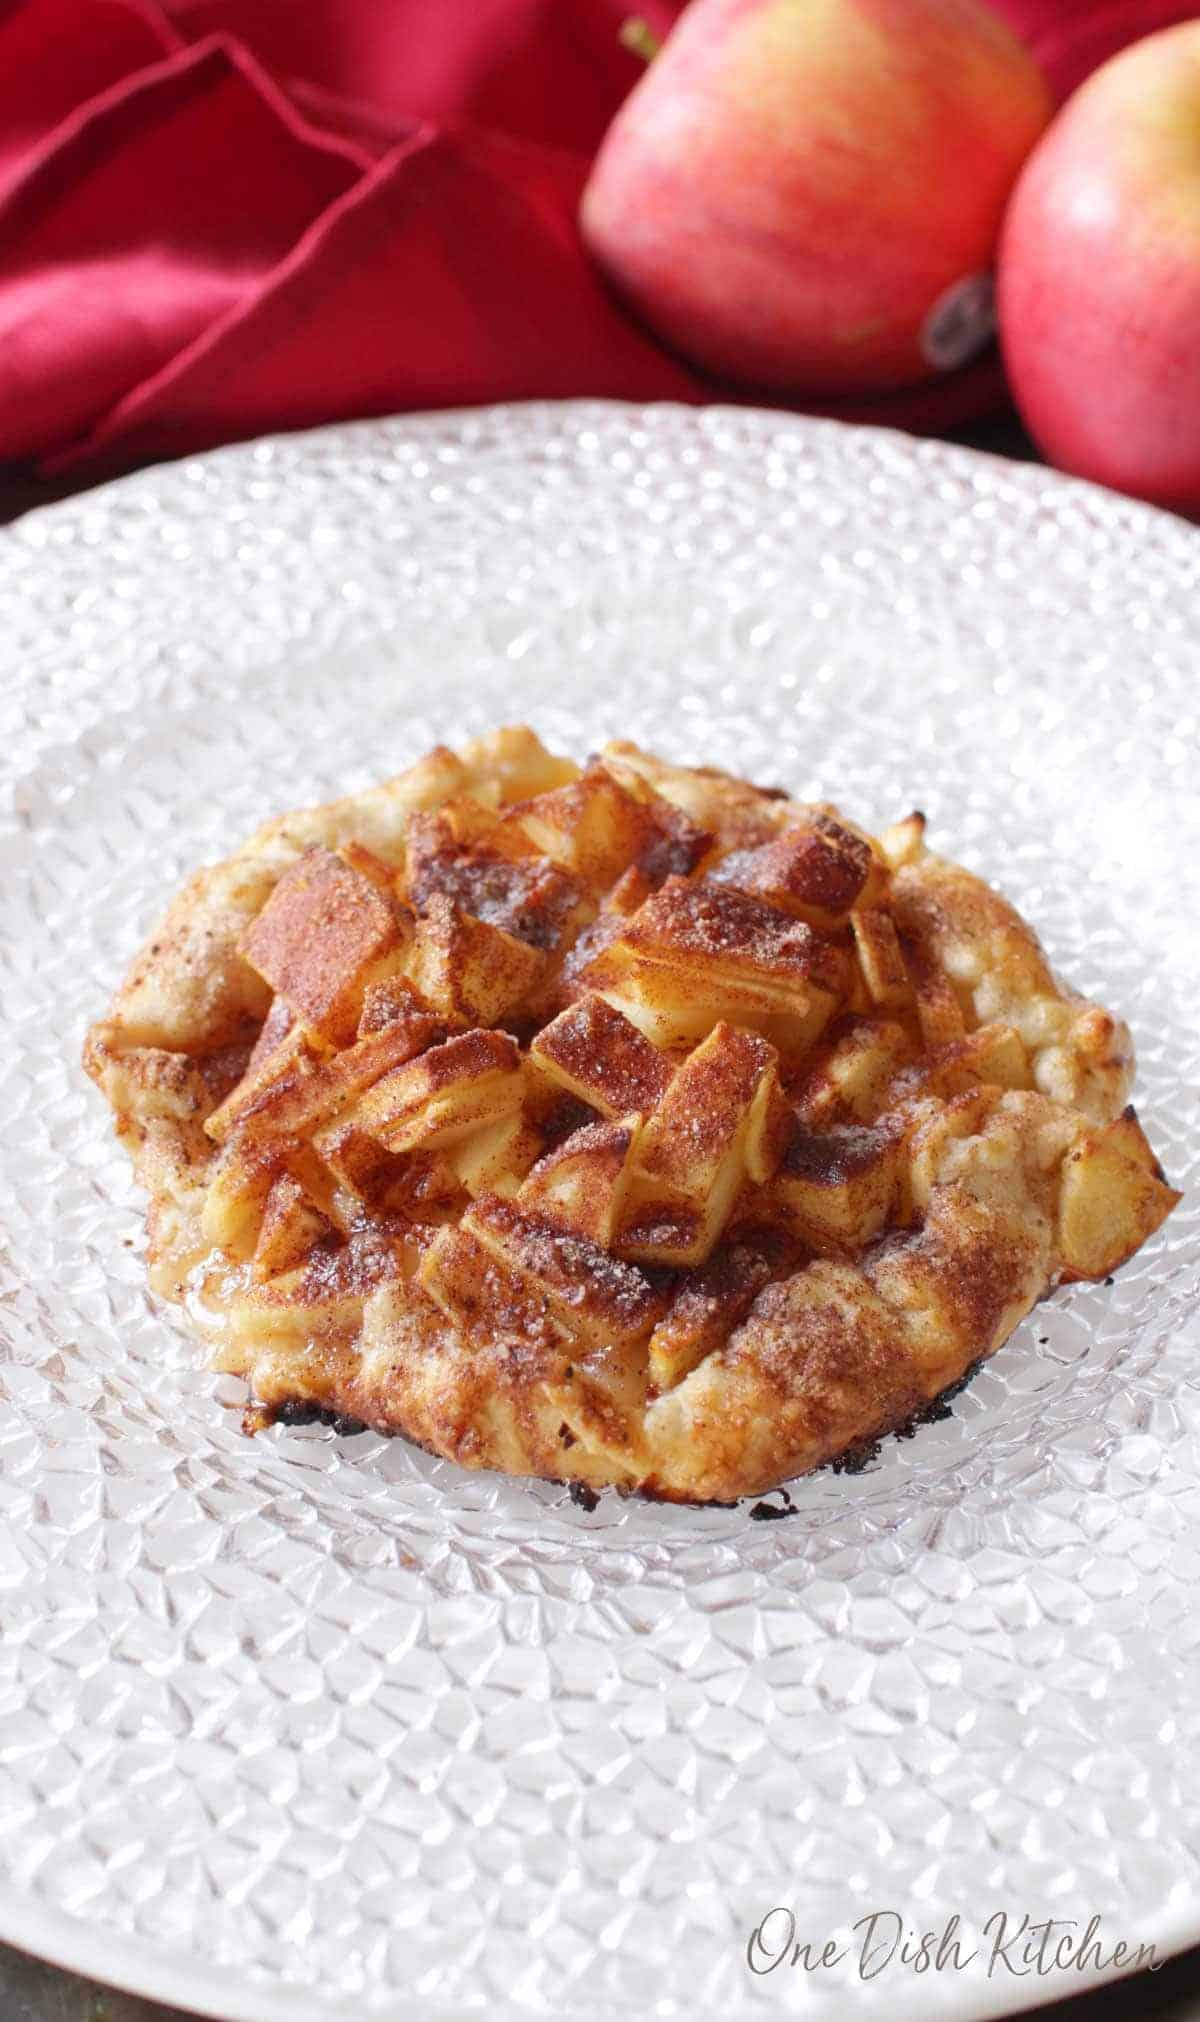 An apple galette topped with cinnamon and sugar plated with apples and a red cloth napkin in the background